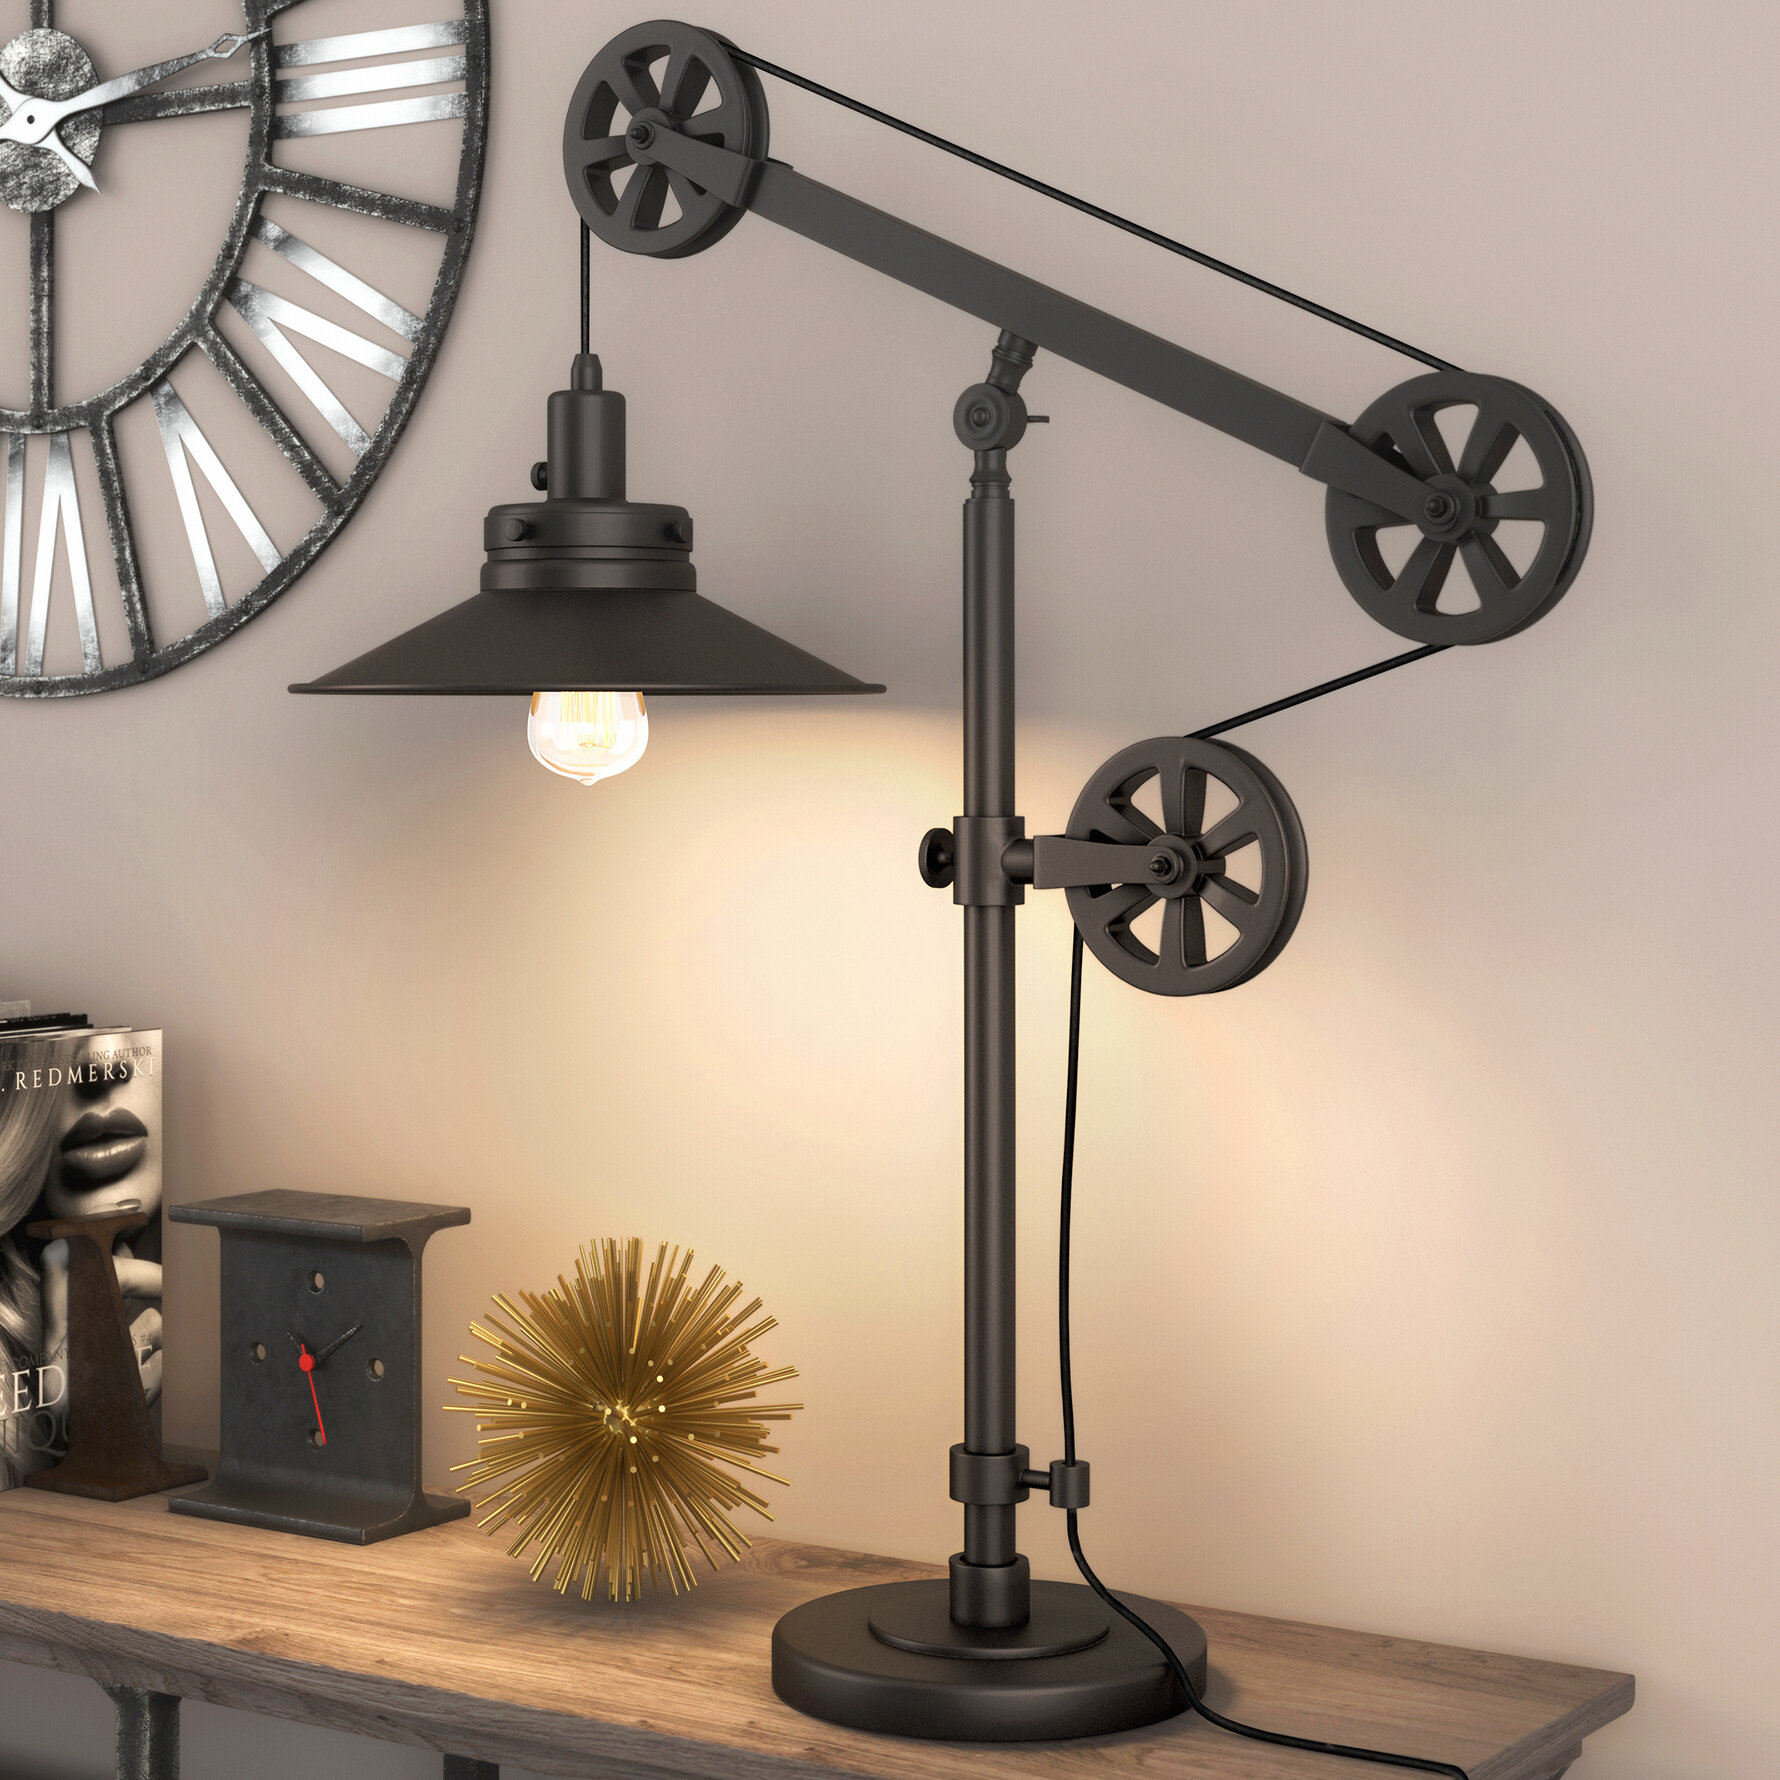 Decorative Table Lamps You Ll Love In 2020